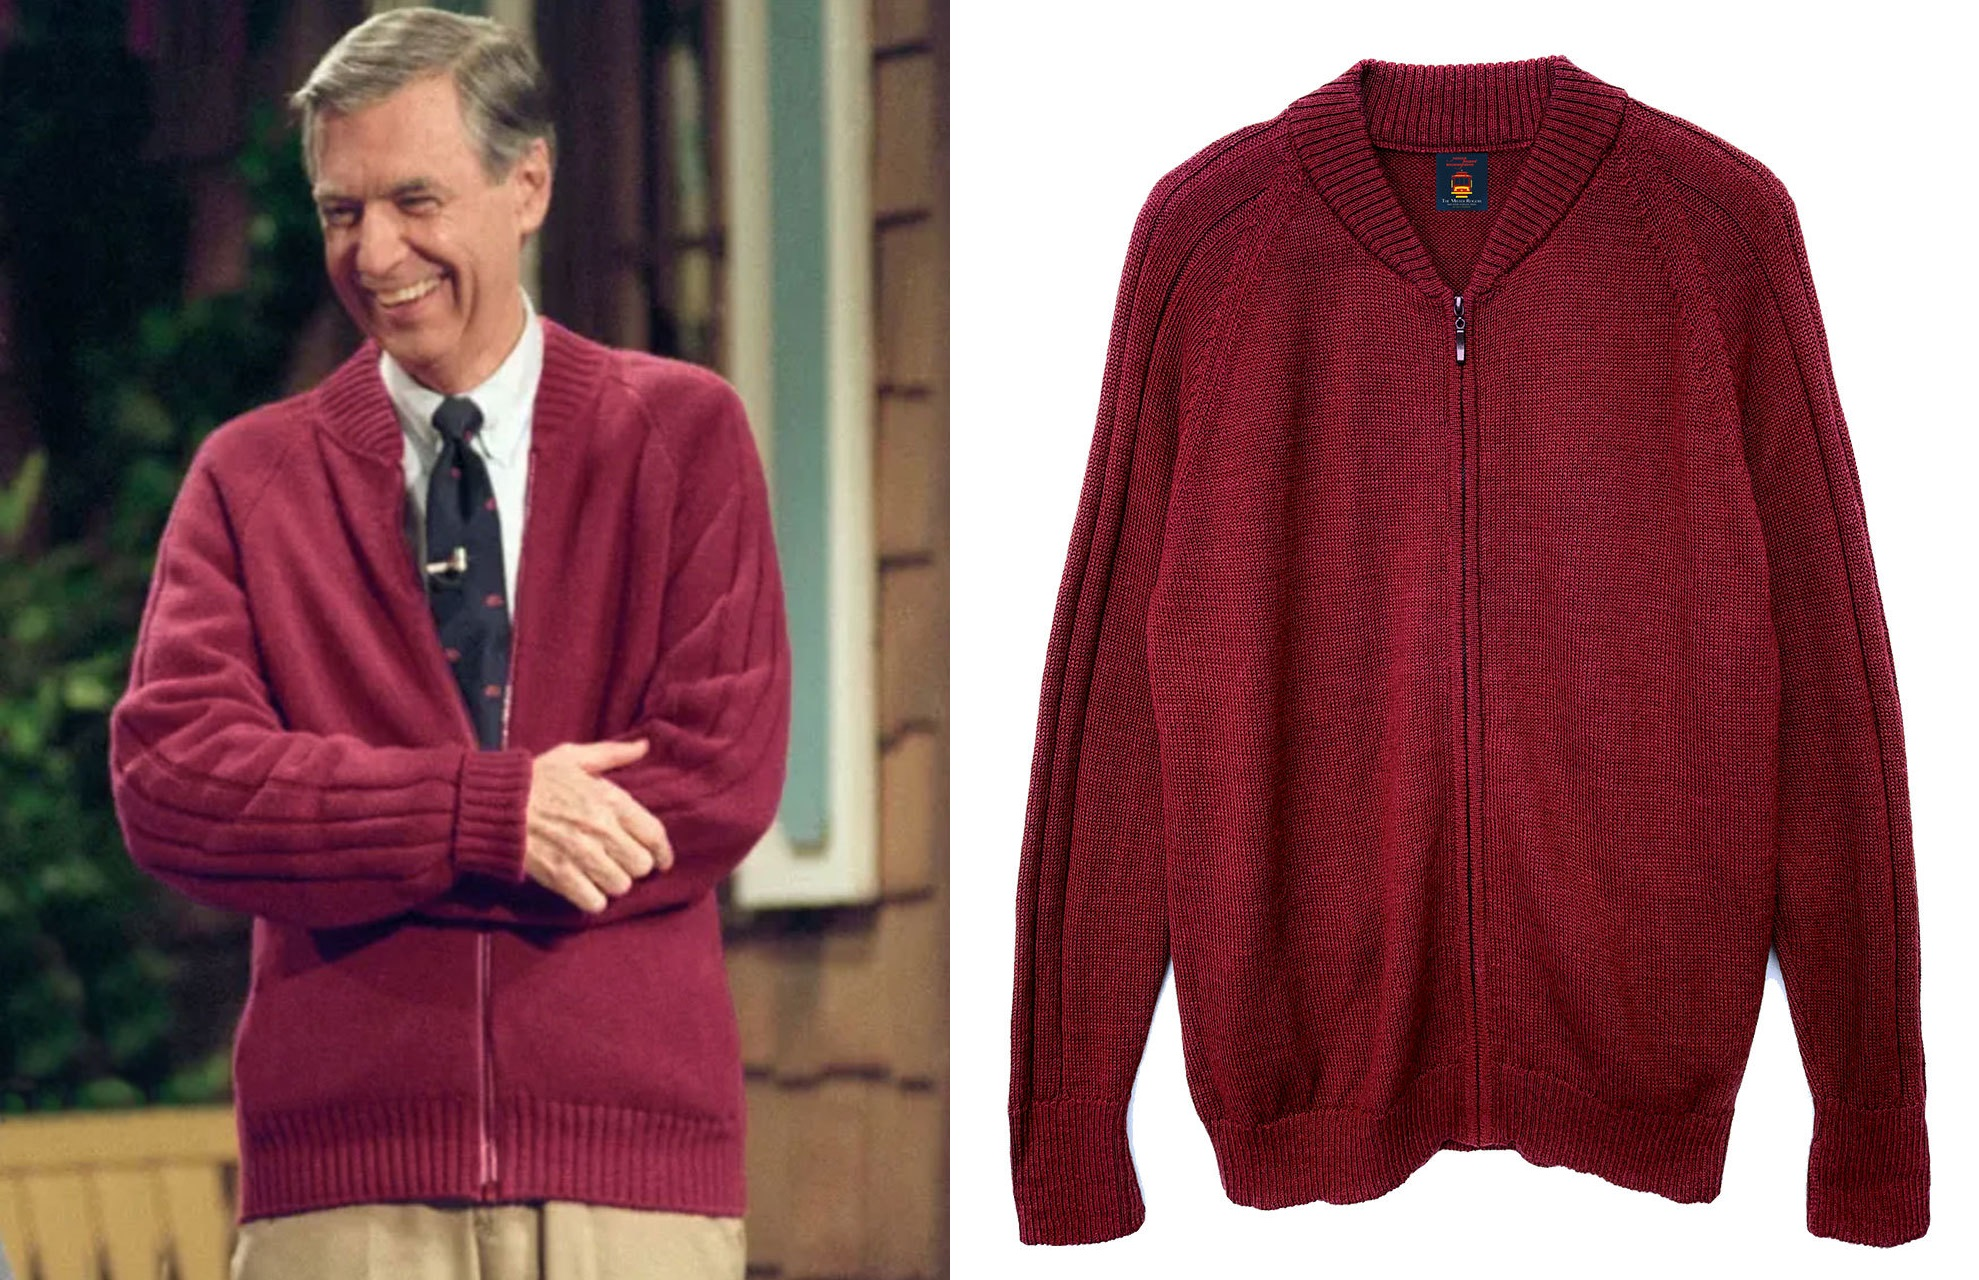 Mr.-Rogers-Red-Sweater